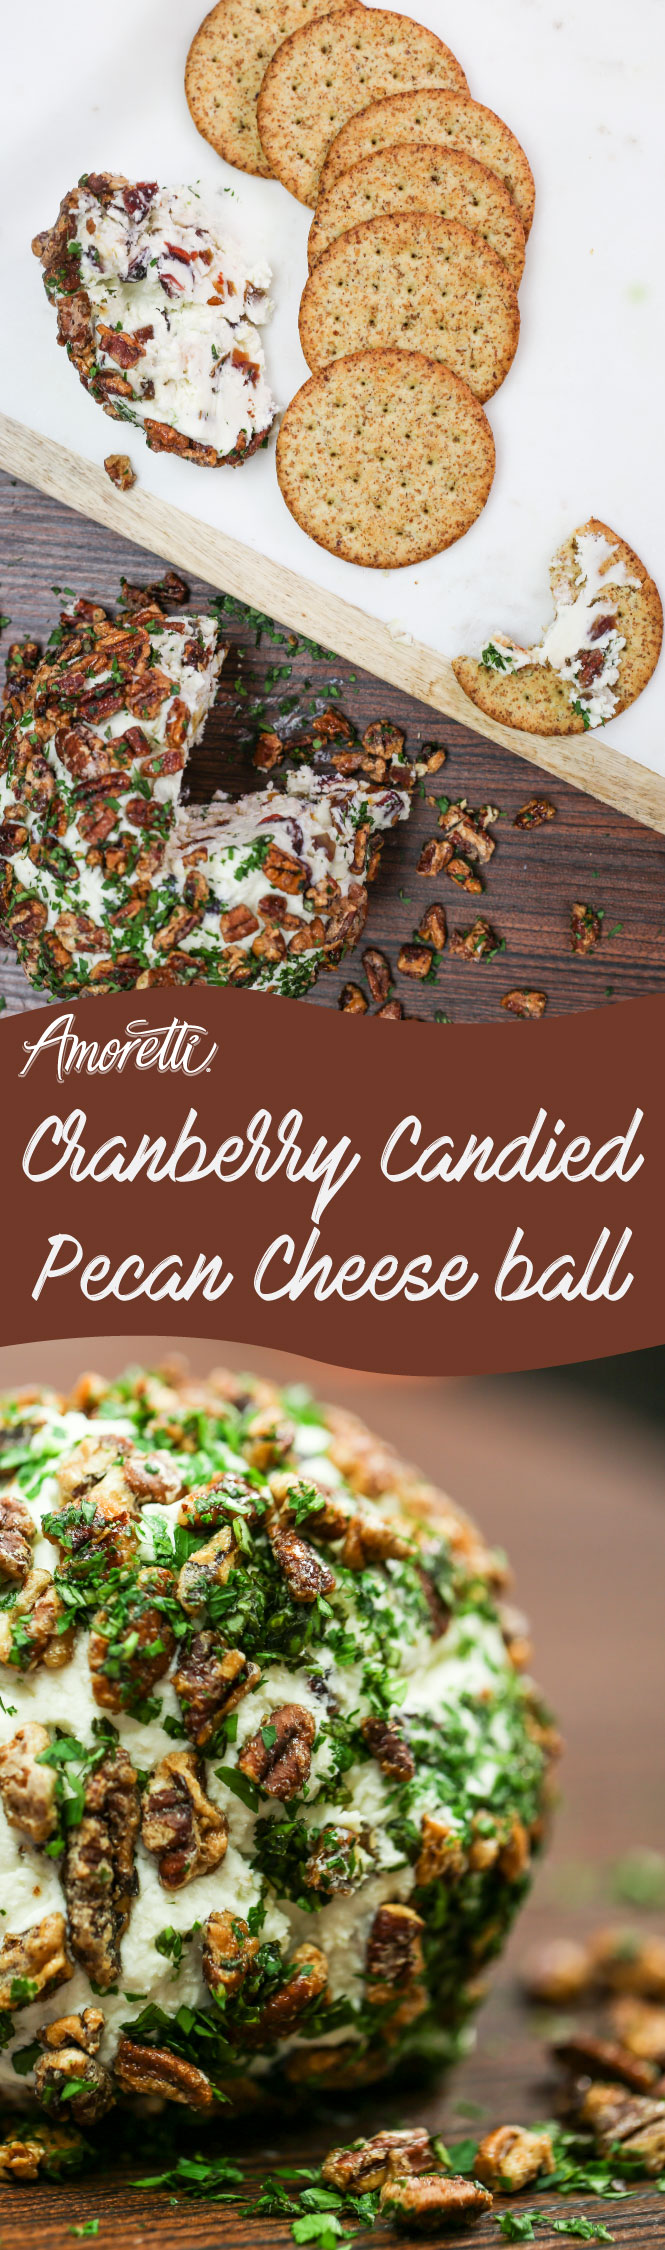 A super delicious and savory cheese ball recipe that is a great appetizer when you have company over!